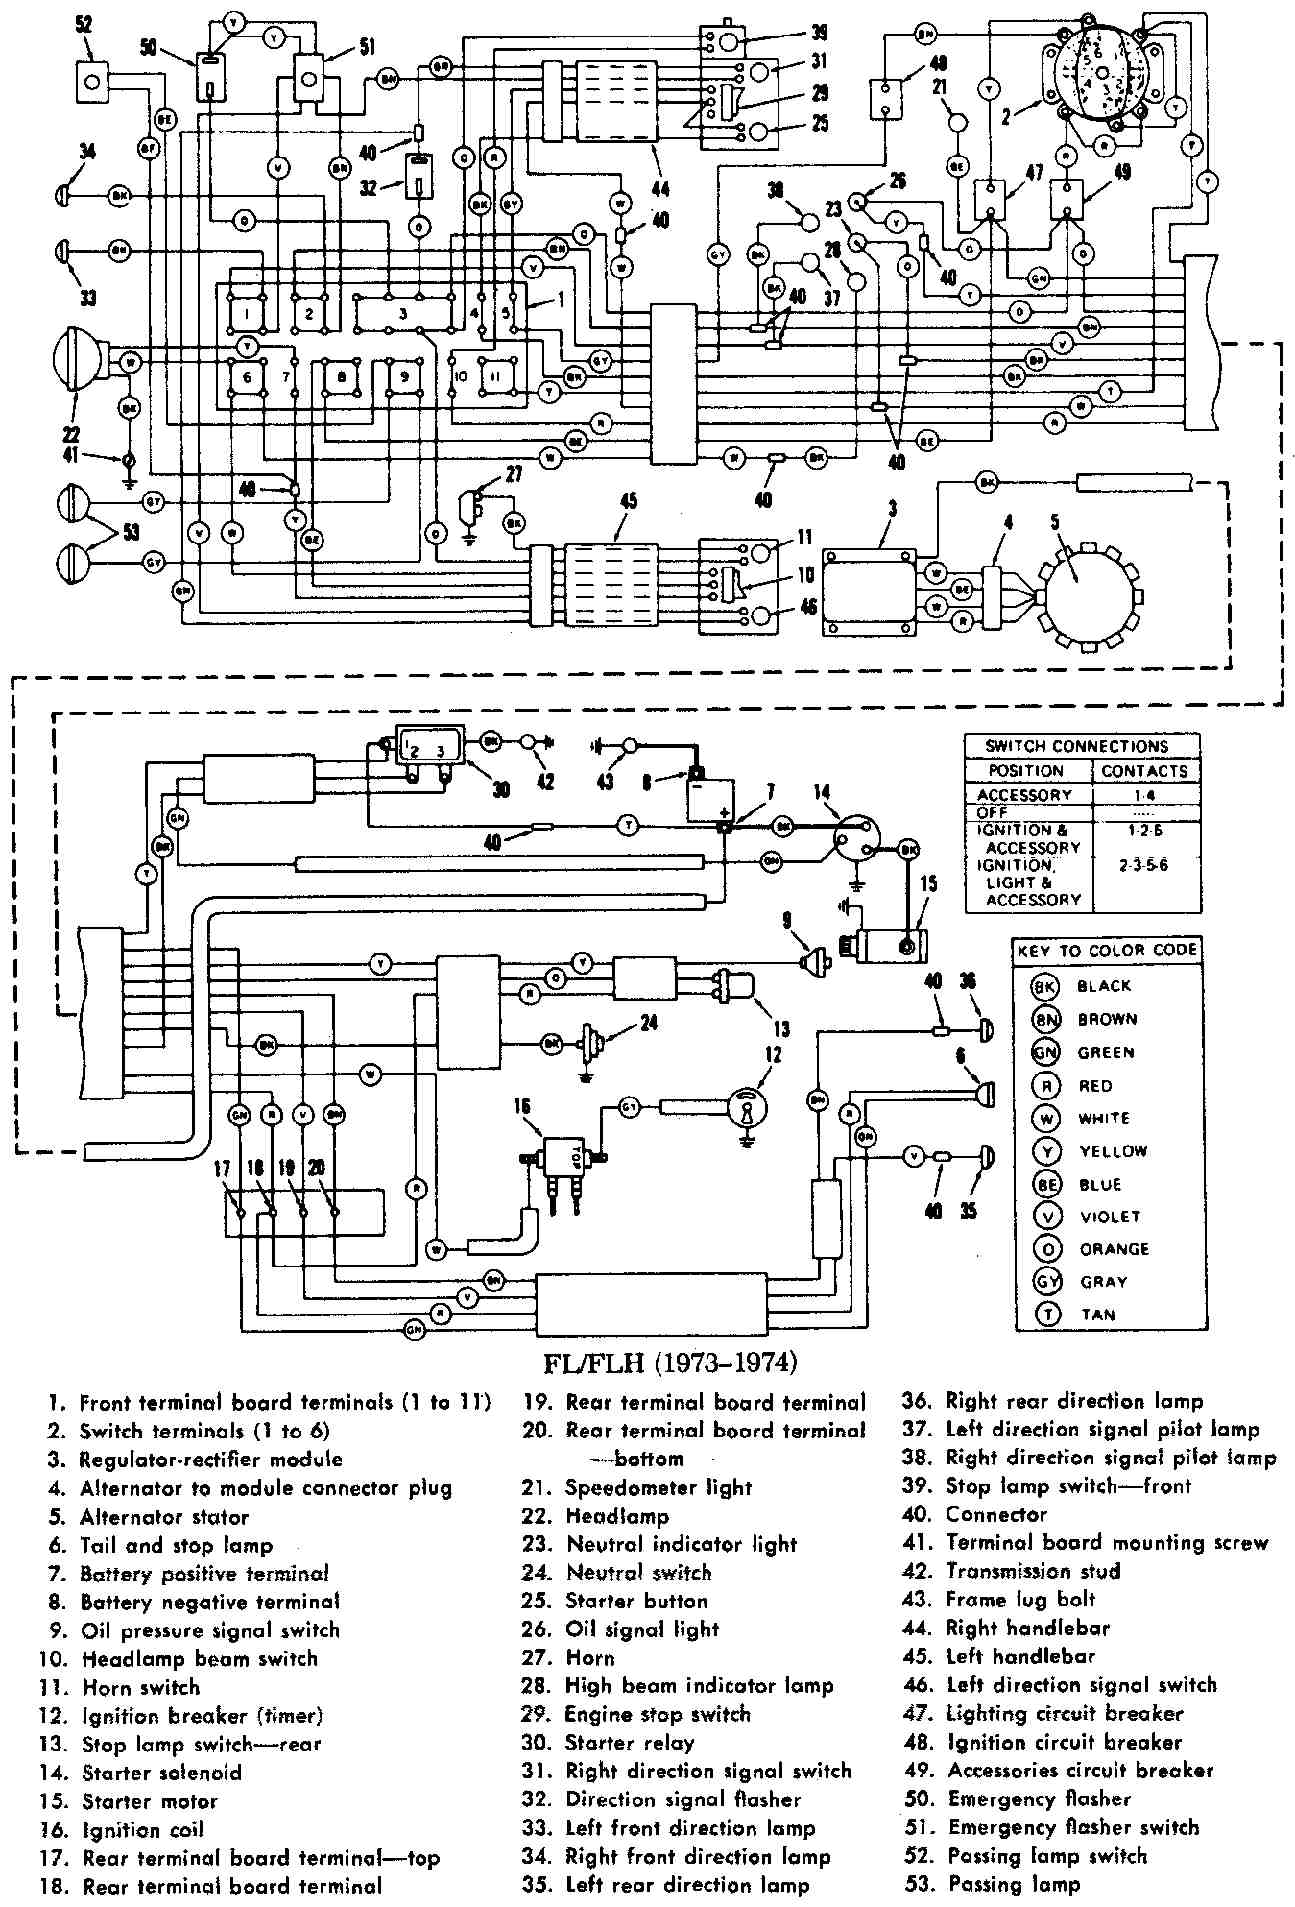 1974 Mustang Fuse Panel Diagram Wiring Library 1968 Manual Amc Amx Starter Pontiac Fiero Box